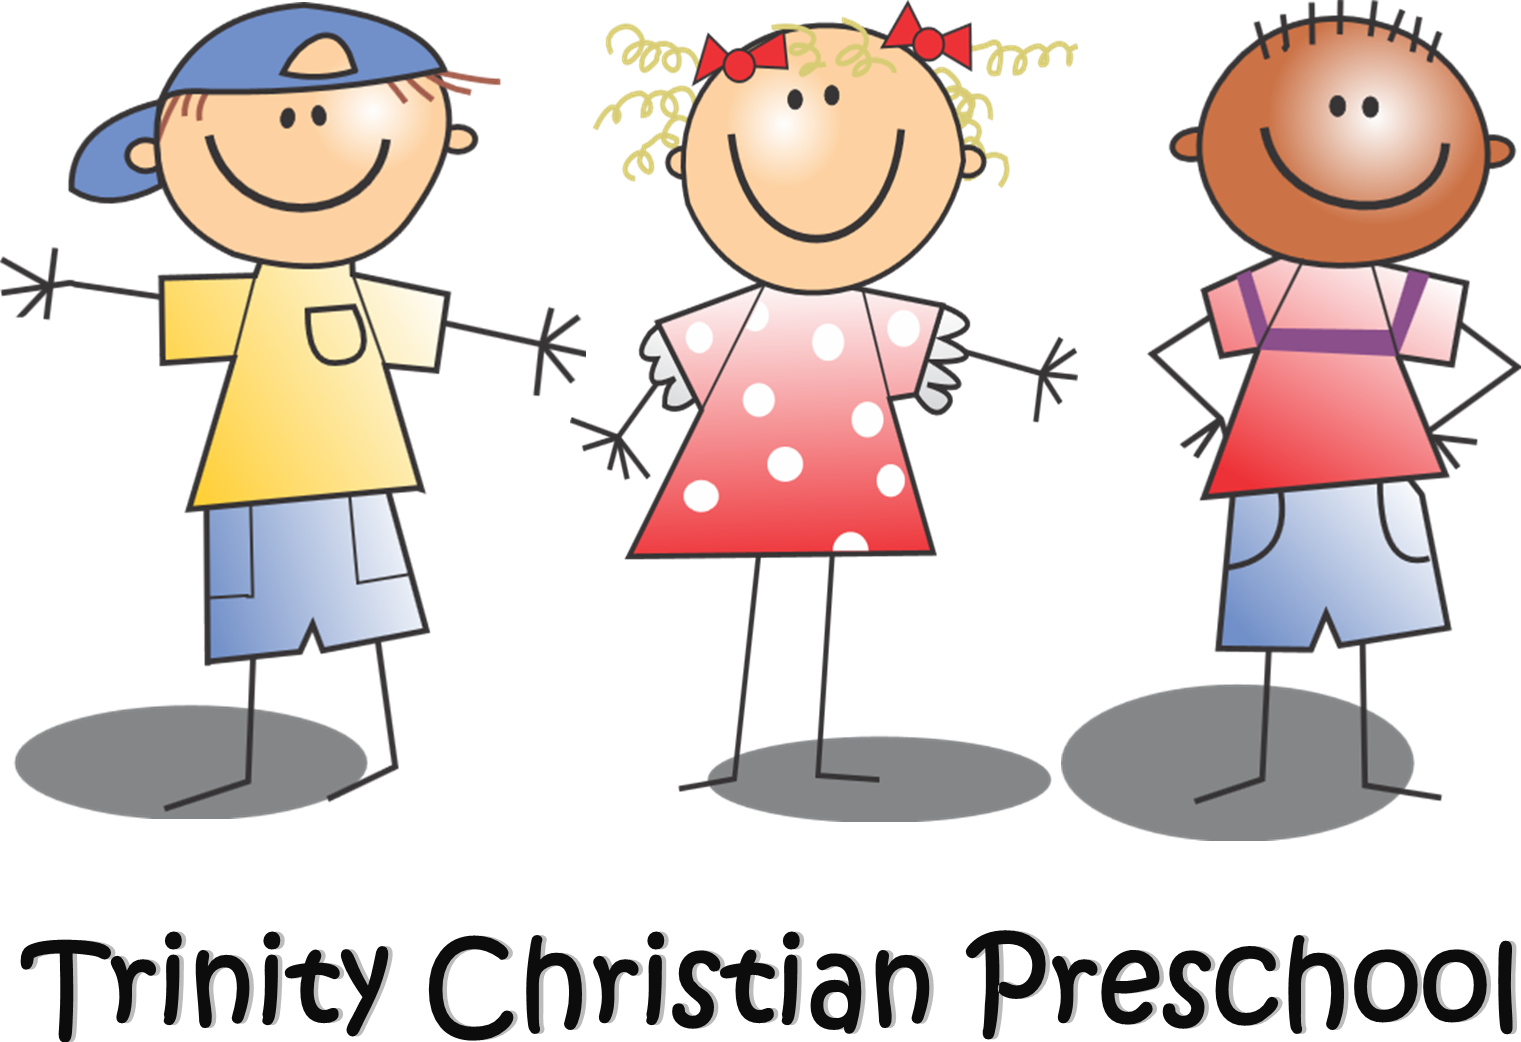 preschool children transparent. Numbers clipart pre school banner royalty free library